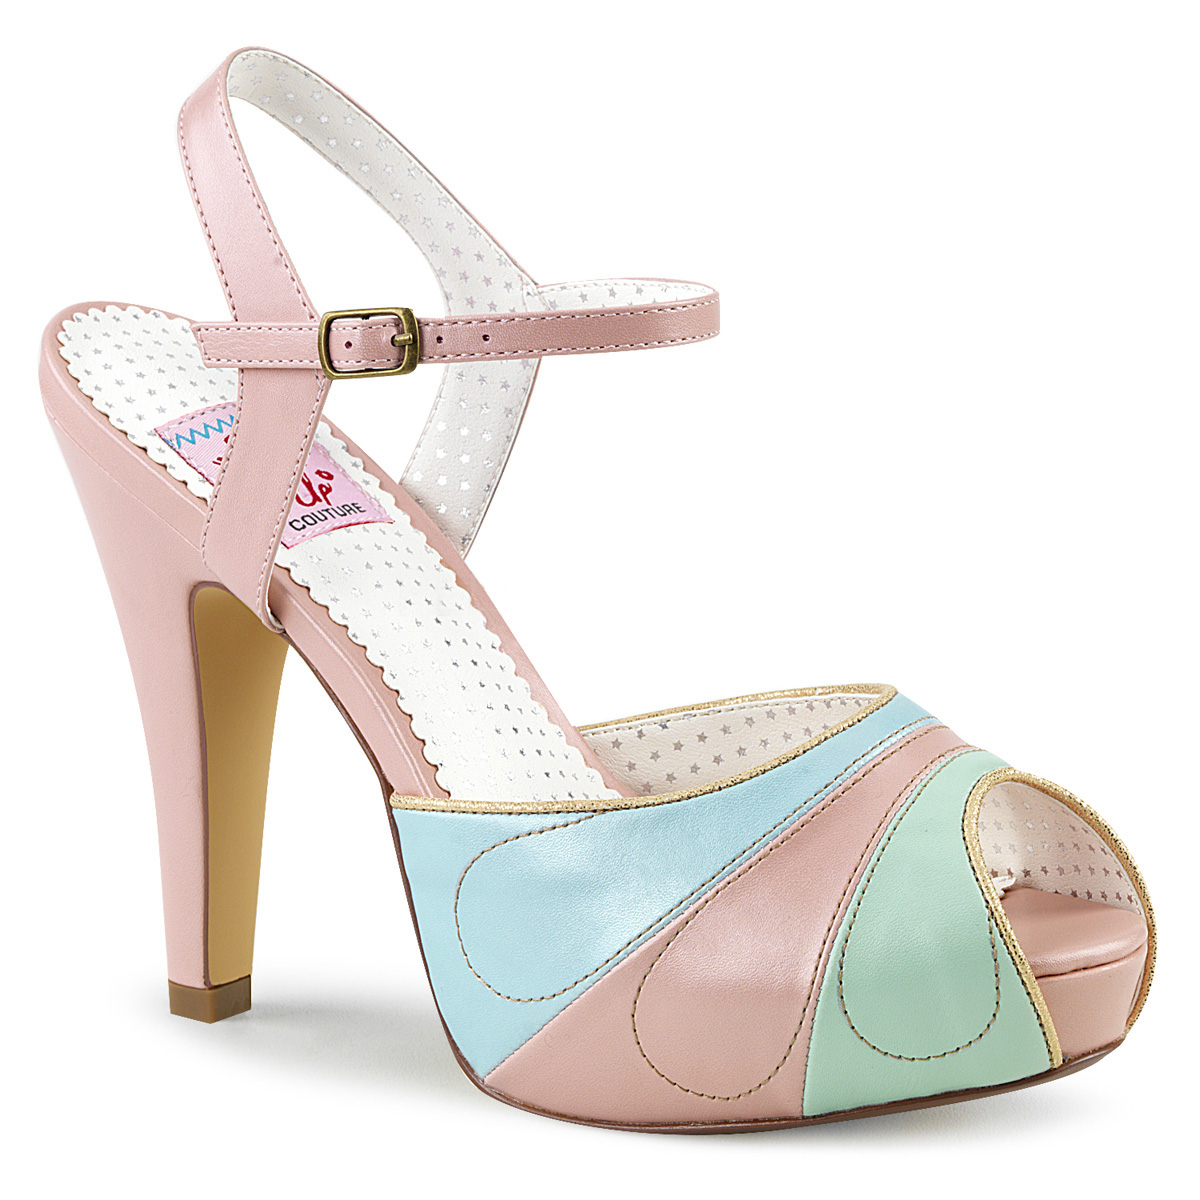 separation shoes 77789 6b3fa Retro Sandal BETTIE-27 - Pink, Pin Up Couture